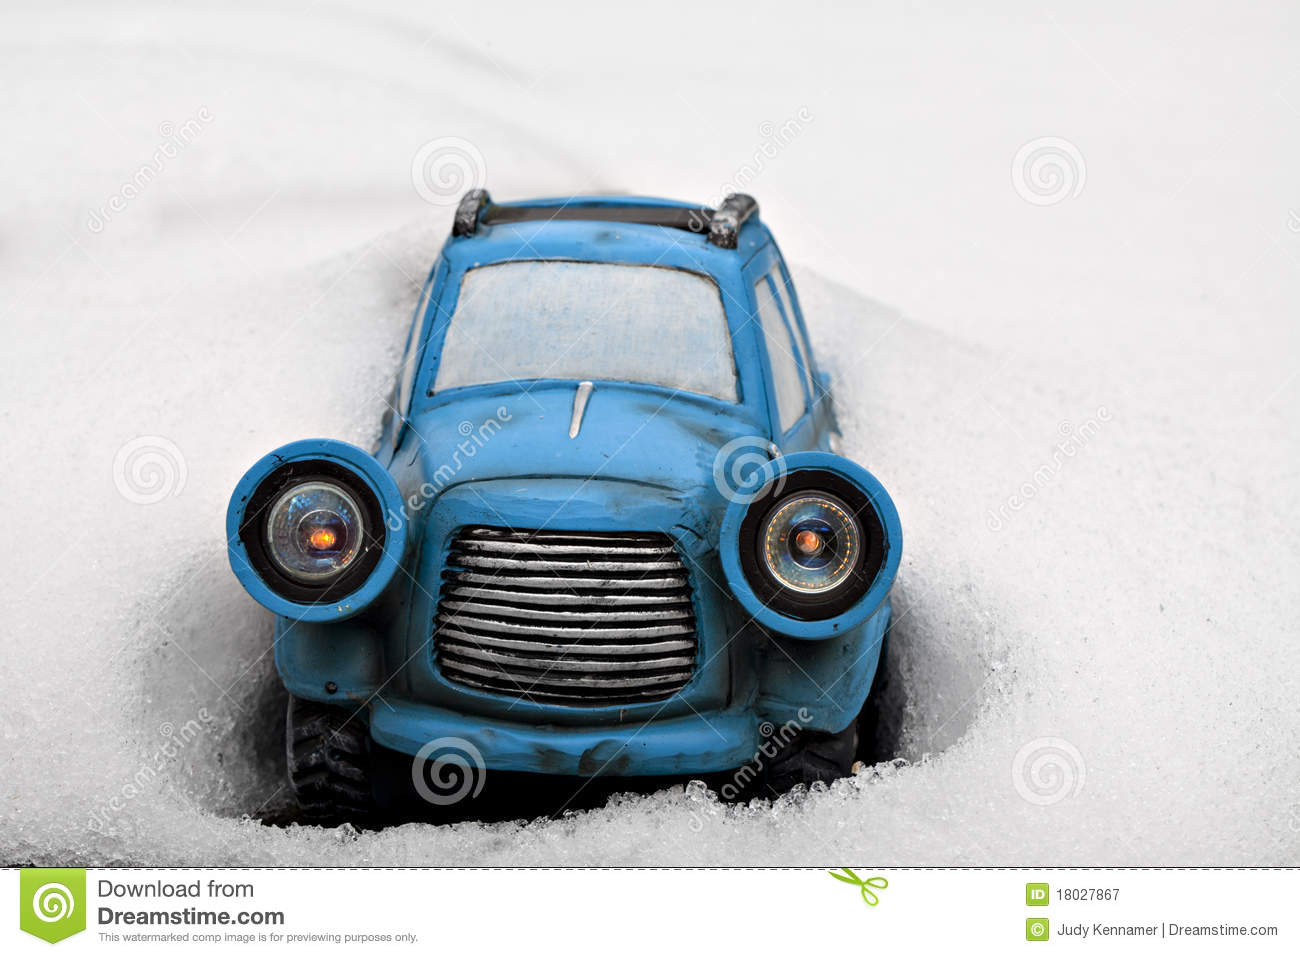 Little Blue Toy Car Stuck In Snow Stock Image Image Of Horizontal